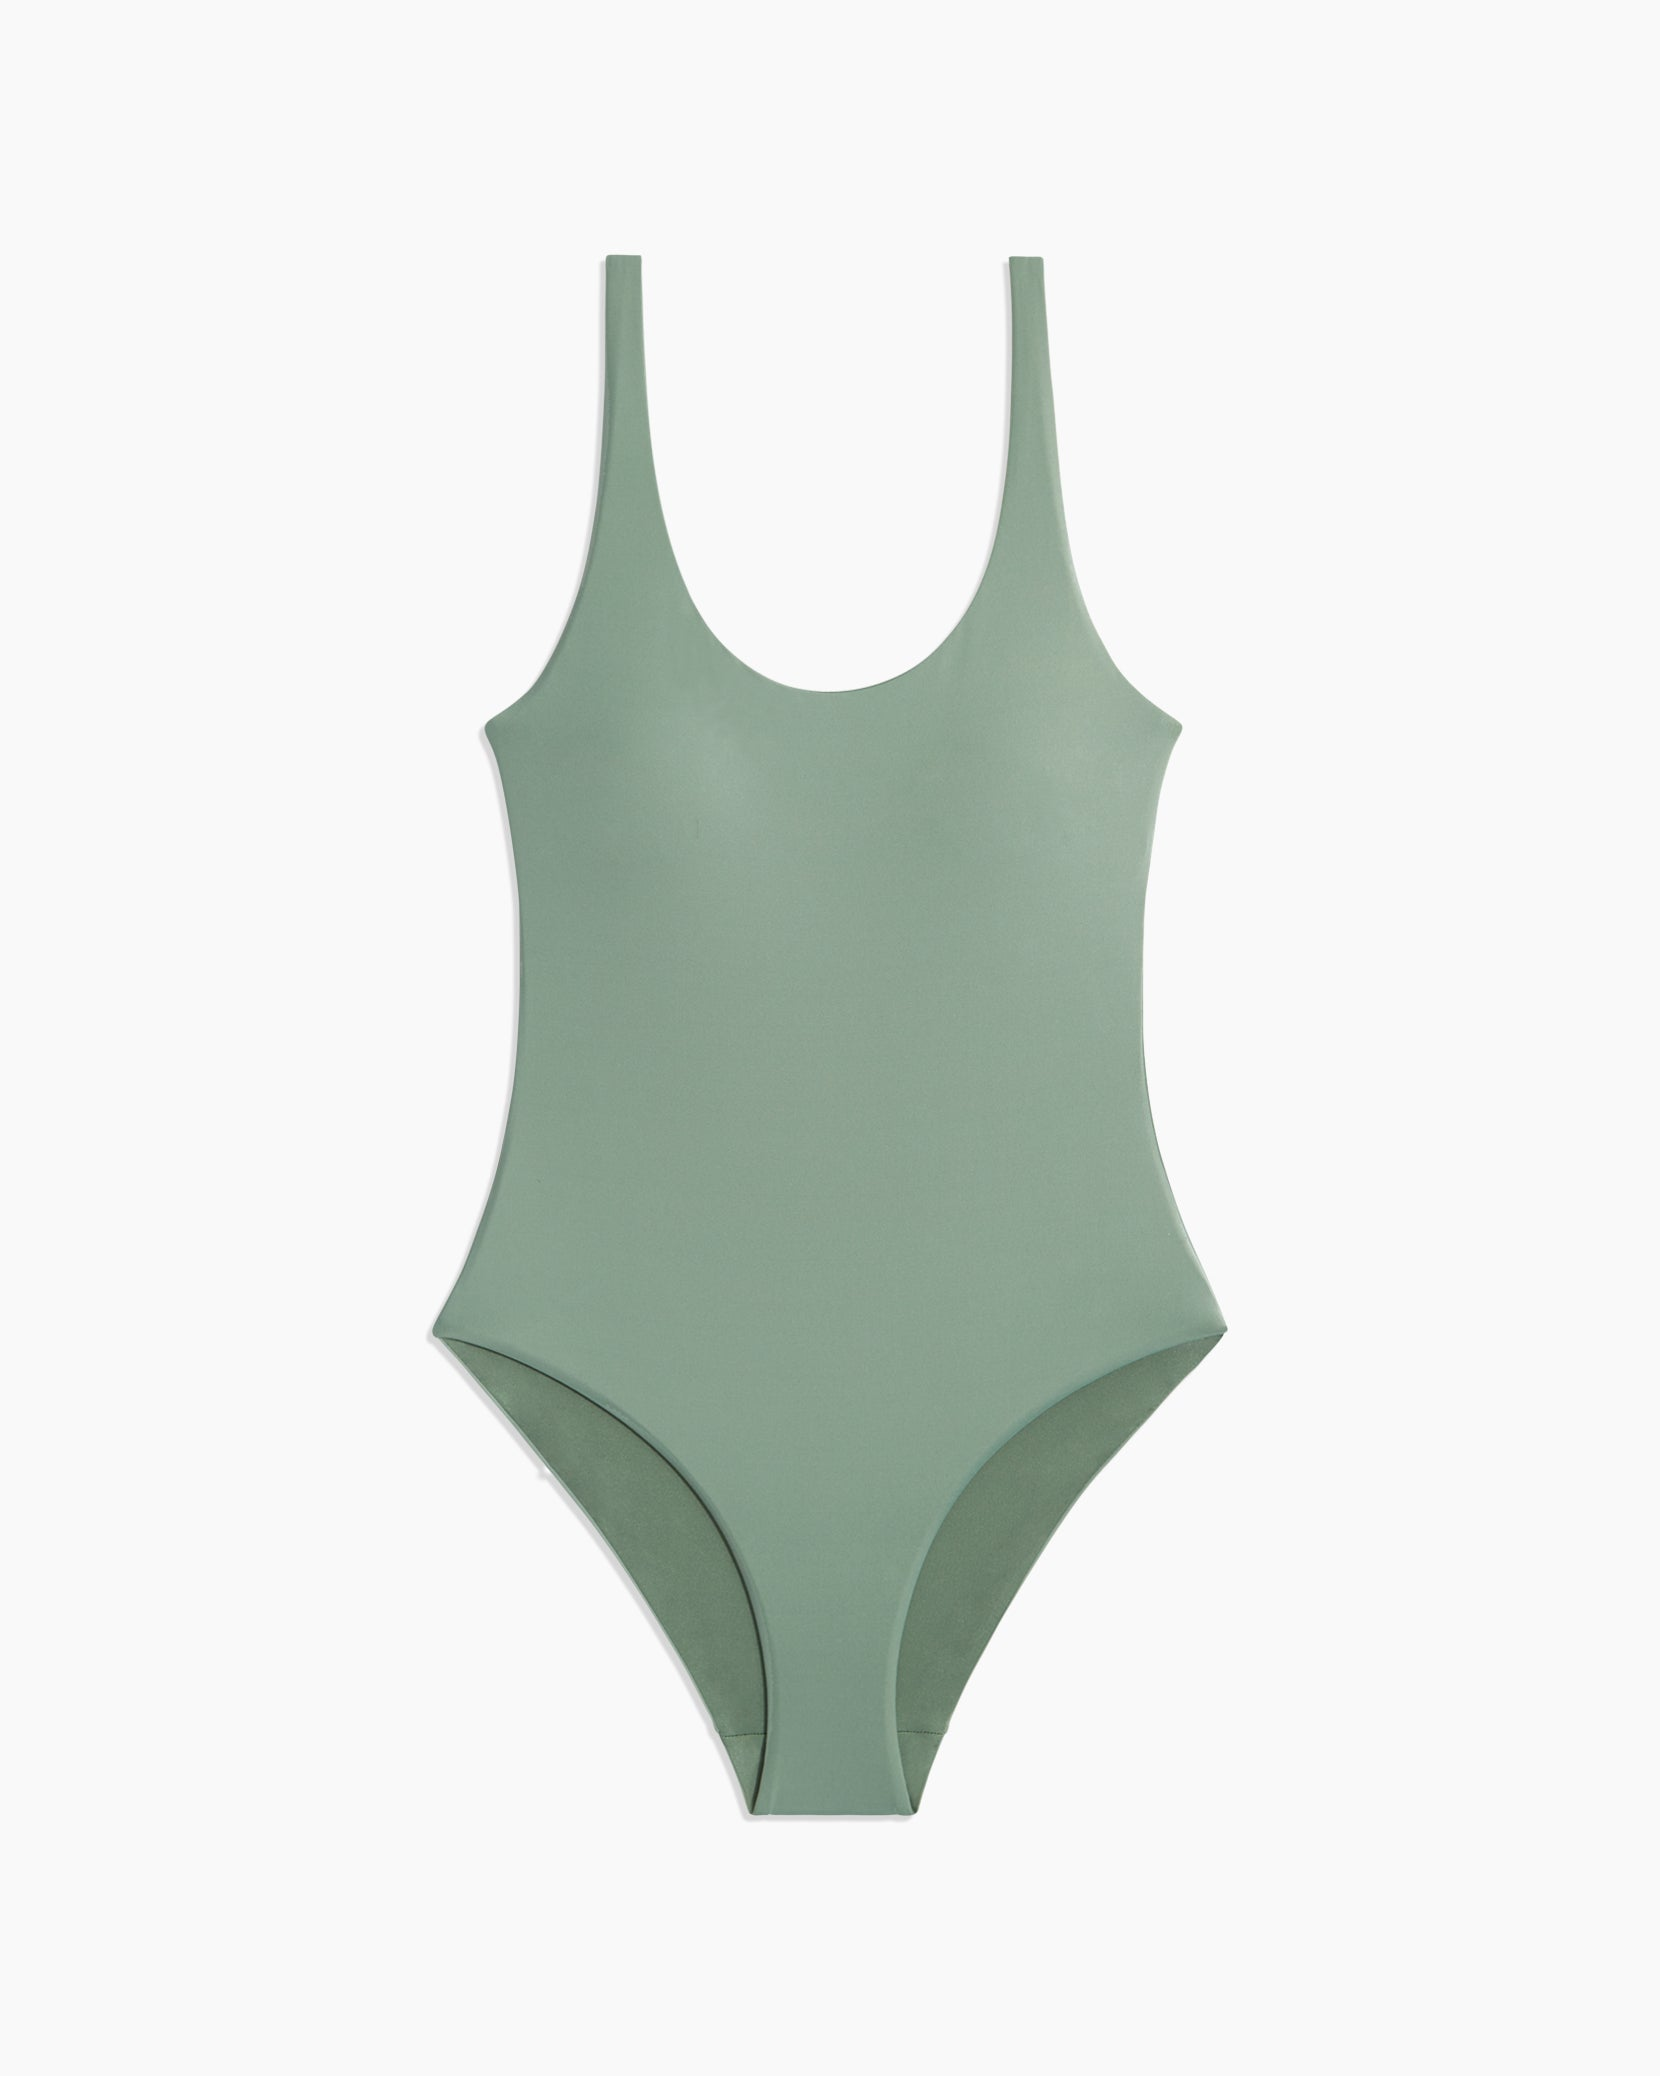 Rachel One Piece in Army Green - 17 - Onia